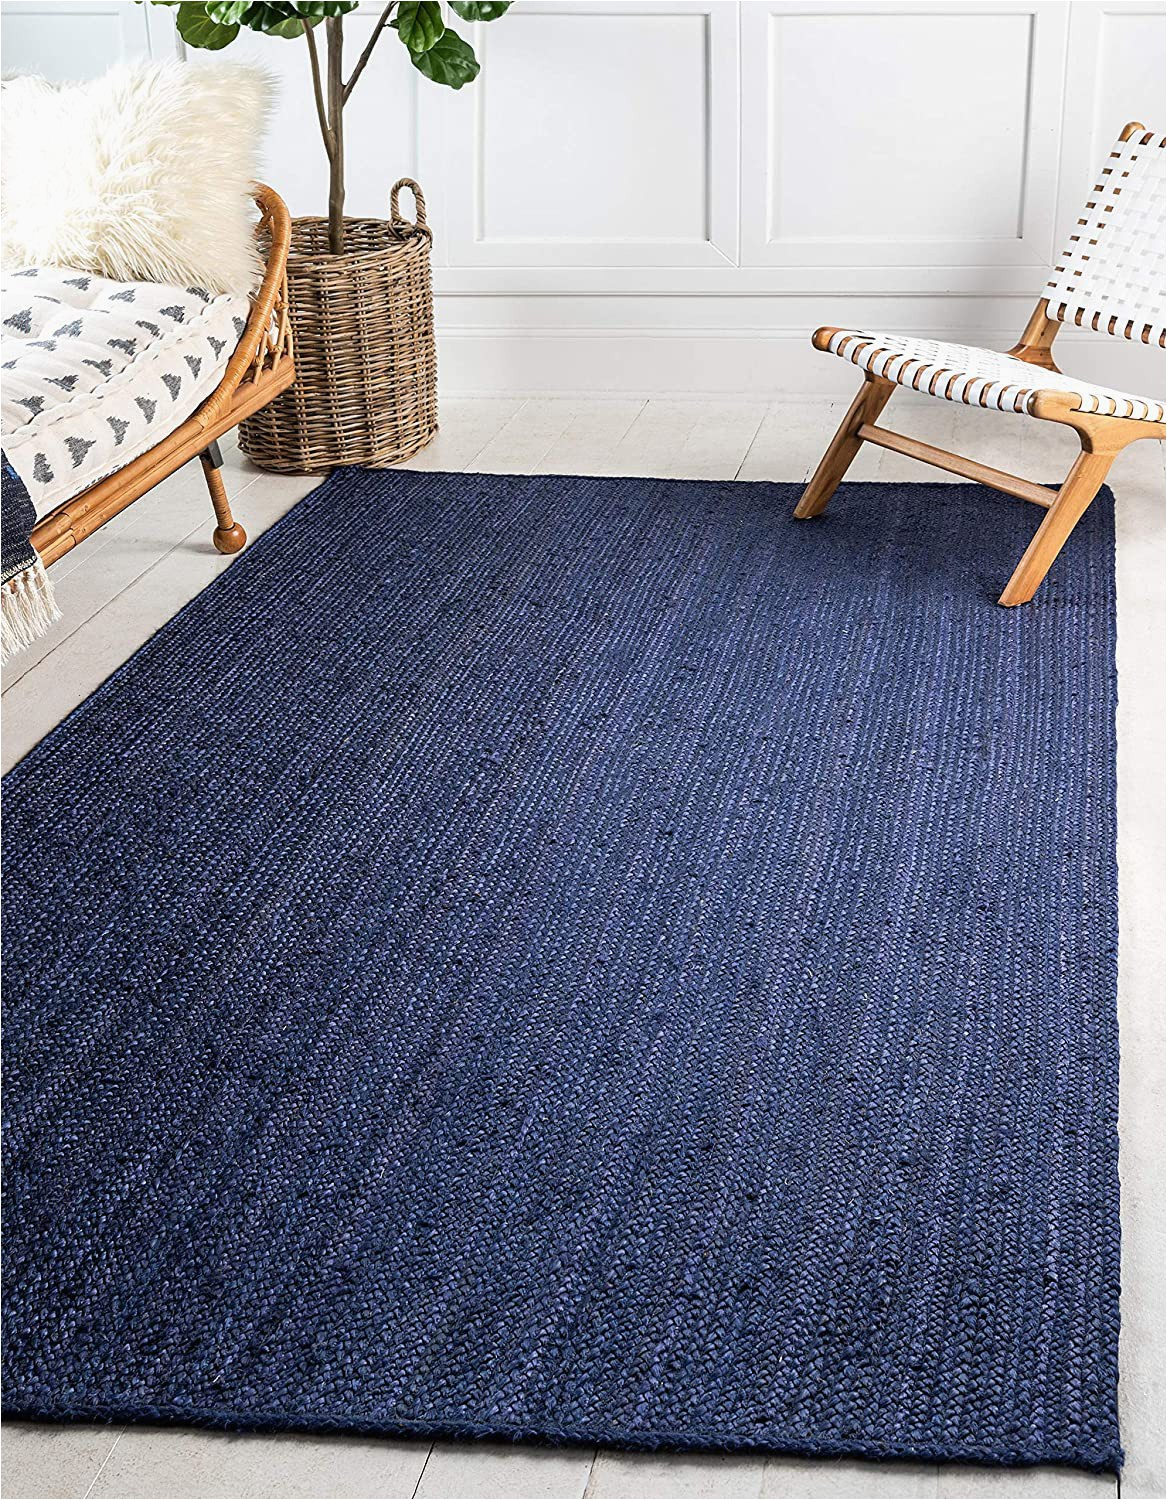 Navy Blue Woven Rug Unique Loom Braided Jute Collection Hand Woven Natural Fibers Navy Blue Dark Blue area Rug 9 0 X 12 0